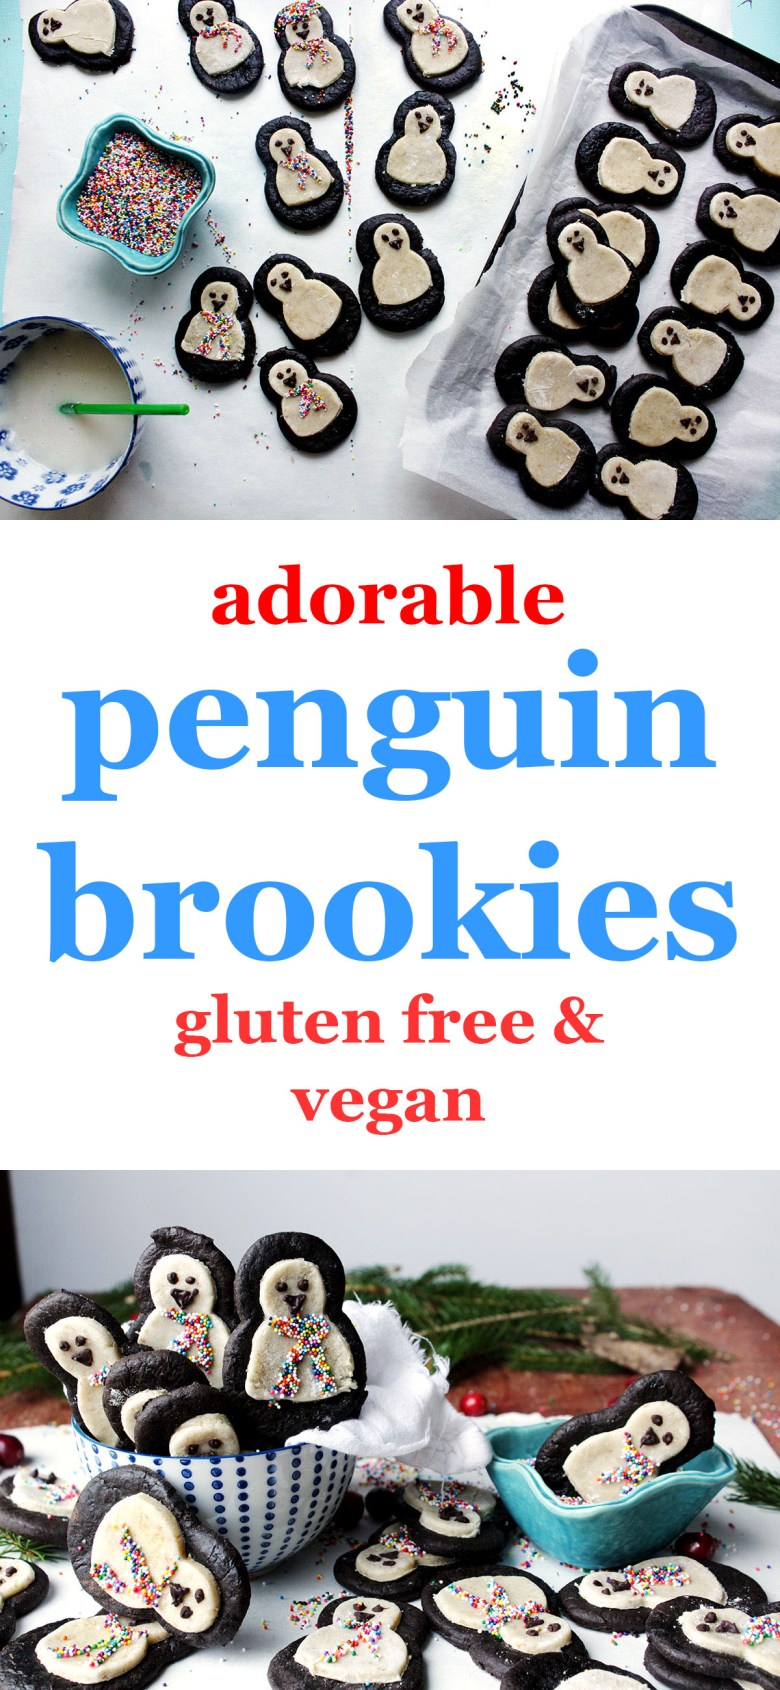 adorable-penguin-cookies-penguin-brookies-cute-cookies-brookies-gluten-free-cookies-gluten-free-brookies-vegan-brookies-gluten-free-brookies-cute